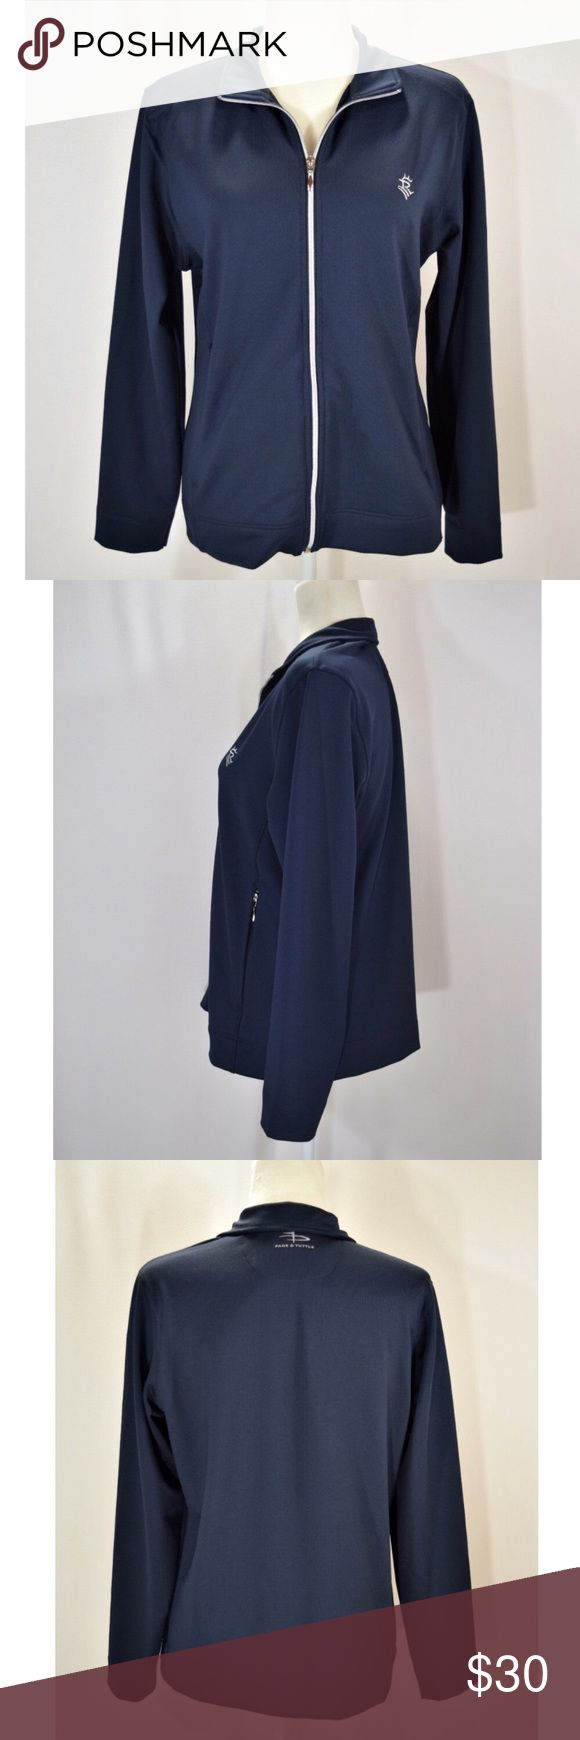 """Women's navy blue Page & Tuttle golf jacket Page and Tuttle golf jacket🔹Navy blue🔹Size medium🔹92% polyester, 8% spandex🔹Two front zip pockets🔹Approx measurements:  armpit to armpit is 20.5"""" and top of shoulder to bottom hem is 24.5""""🔹Excellent condition🔹Smoke and pet free home Page & Tuttle Jackets & Coats"""